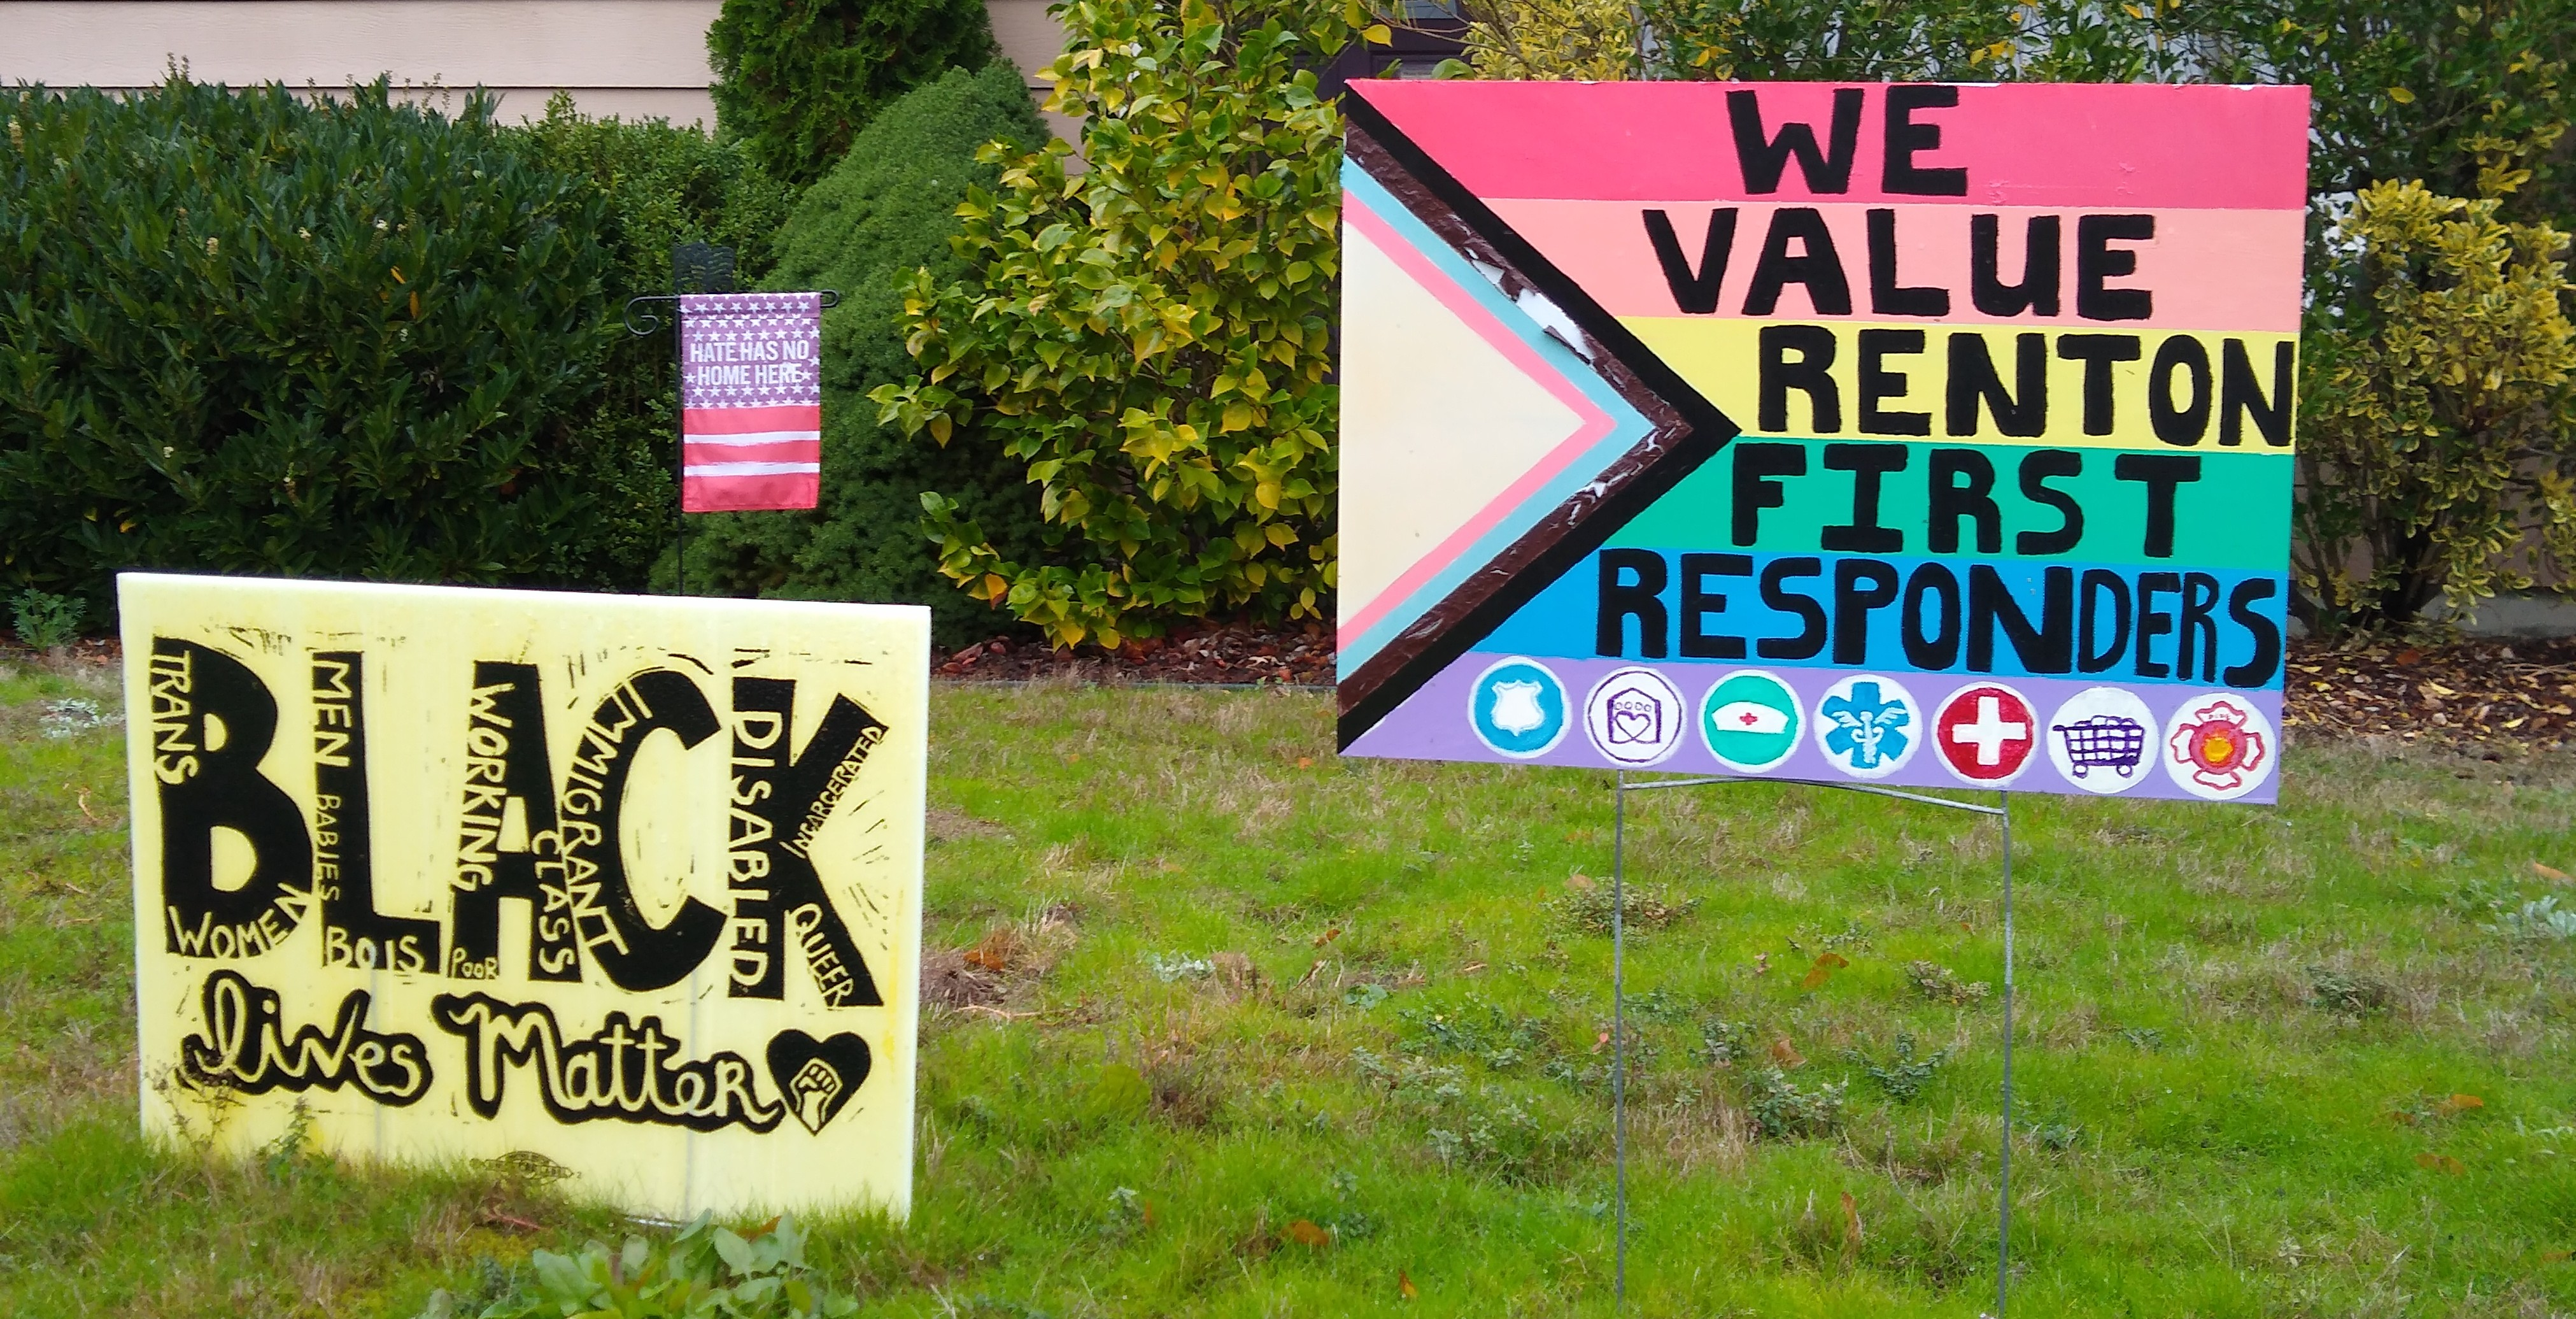 One sign supports Black Lives Matter, the other is rainbow-colored and thanks first responders